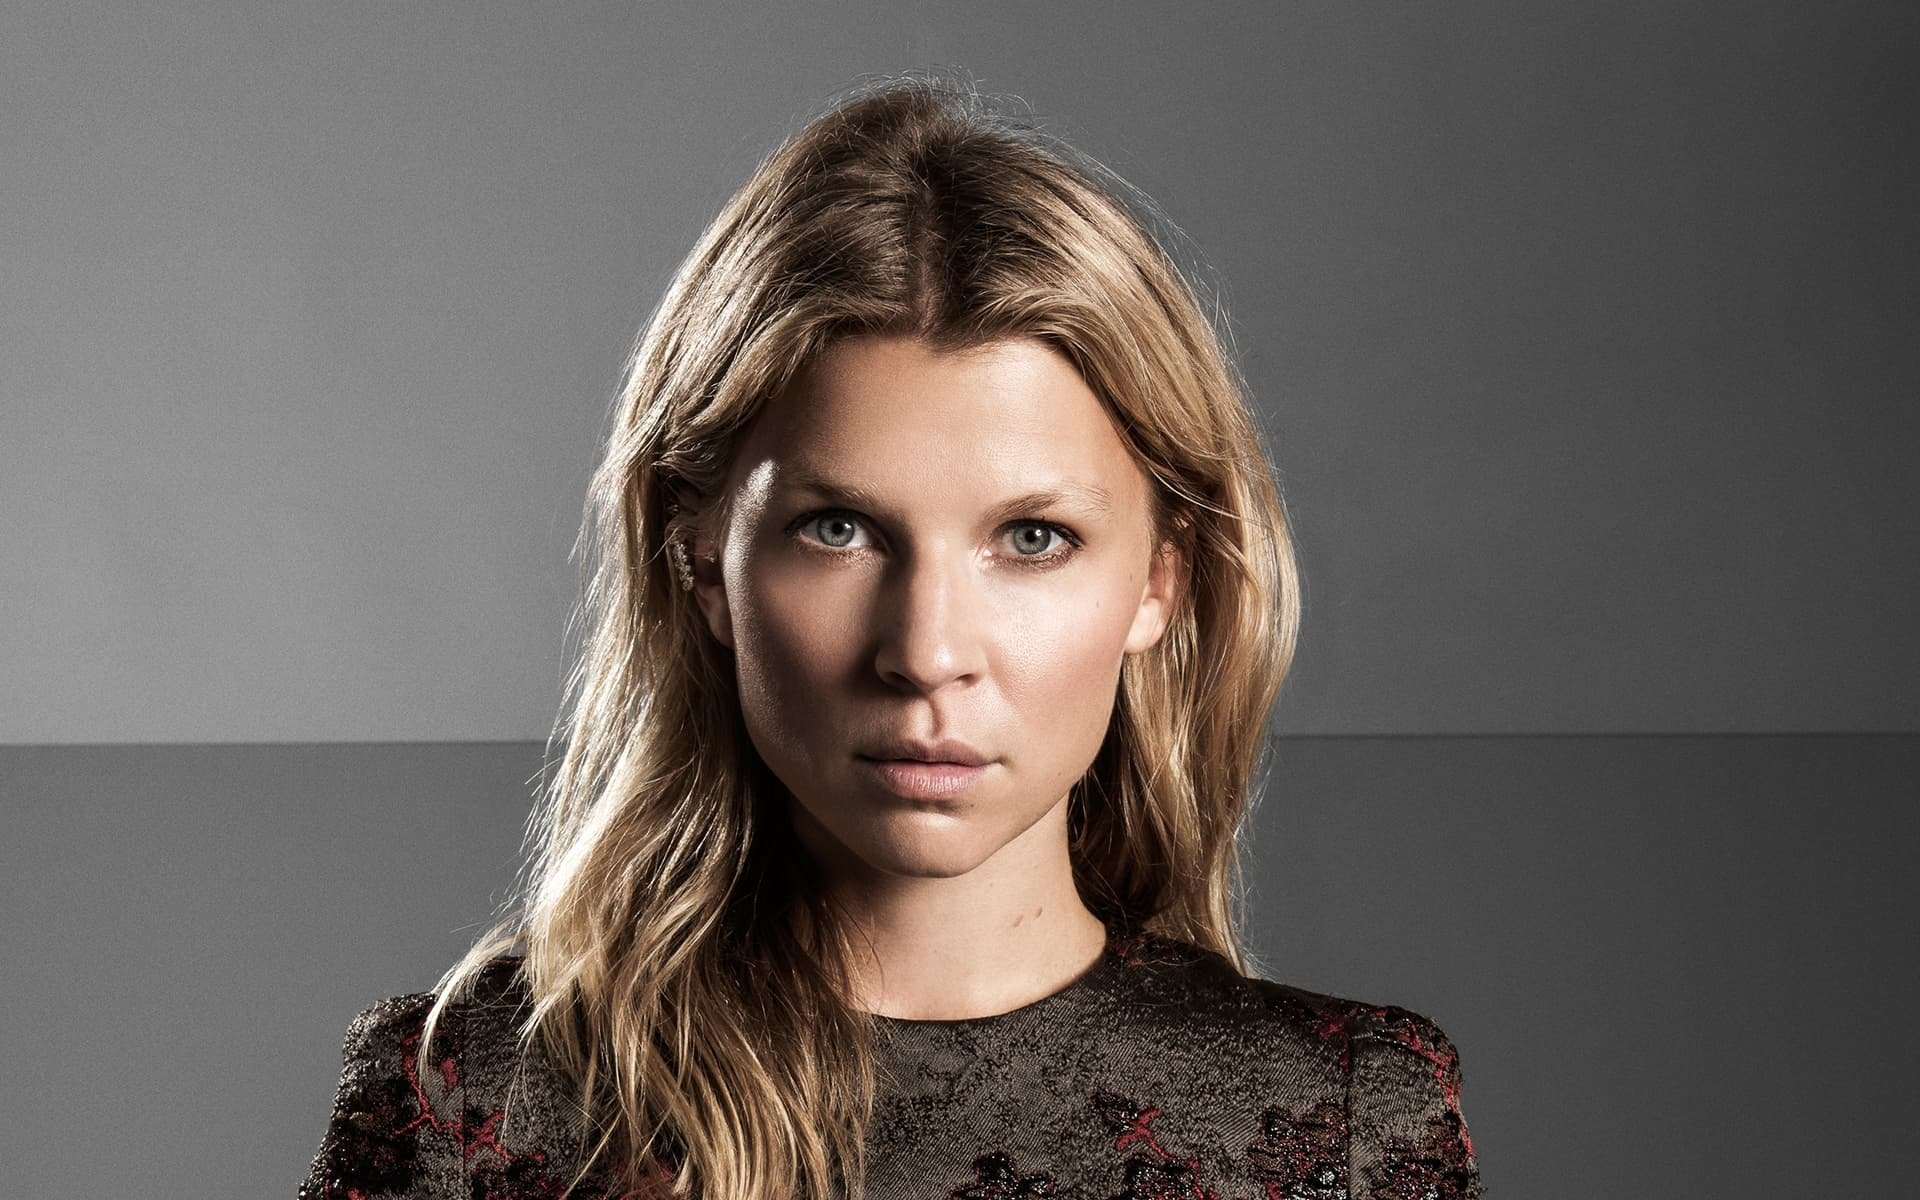 Free Clemence Poesy high quality wallpaper ID:9931 for hd 1920x1200 desktop